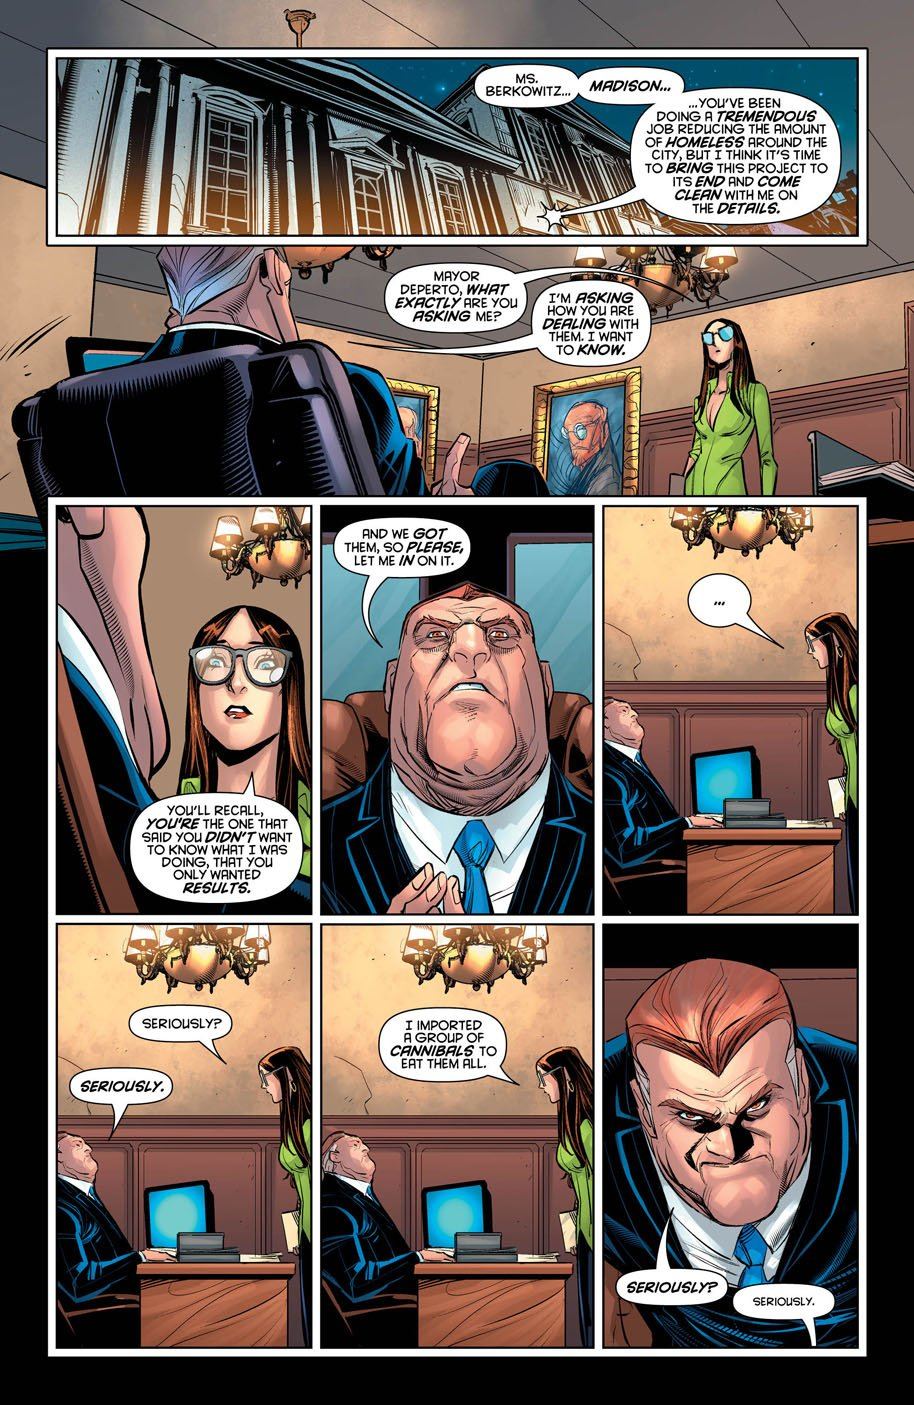 Harley Quinn 18 page 5a